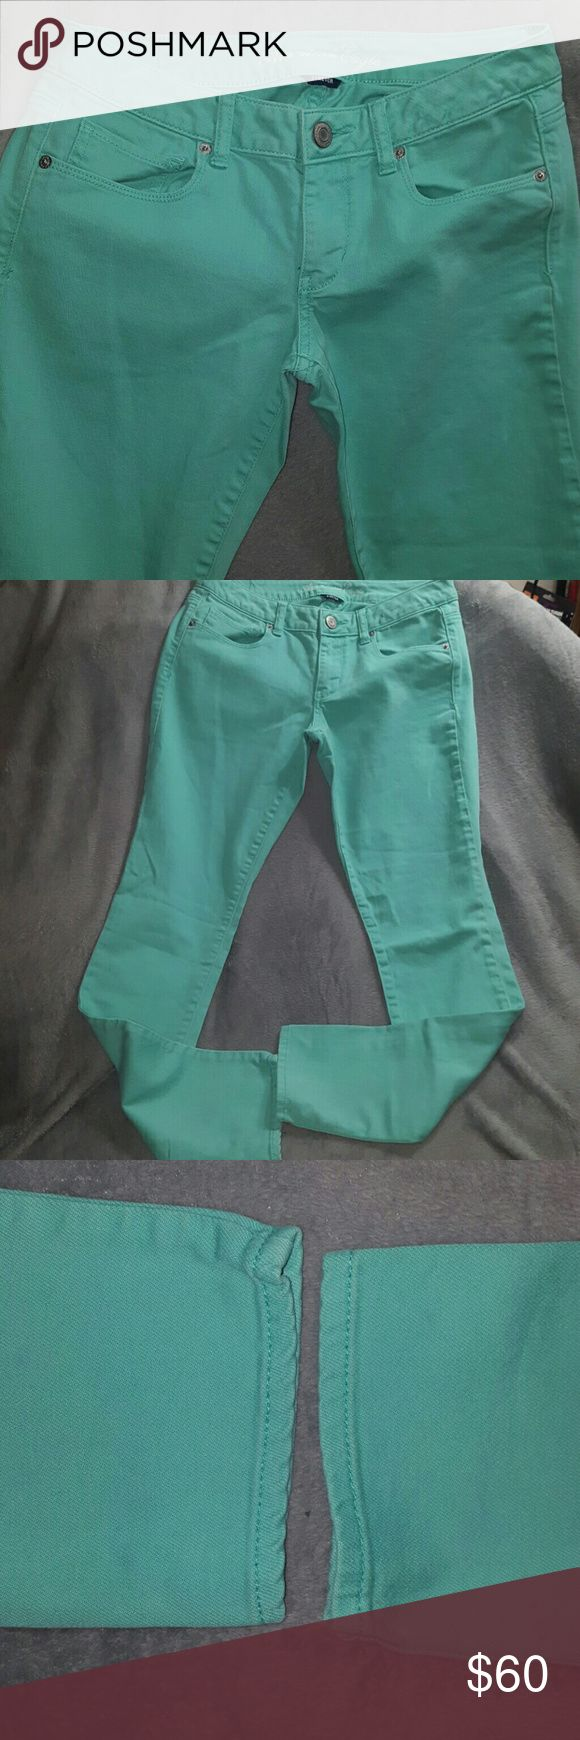 Sea Green SKINNY STRETCH JEANS NWOT American Eagle Sea Green SKINNY STRETCH JEANS ~ New without Tags ~ American Eagle Size 6 regular ~ 98% cotton 2% spandex. GORGEOUS COLOR FOR SUMMER! I ship daily. (#B1 location) American Eagle Outfitters Jeans Skinny